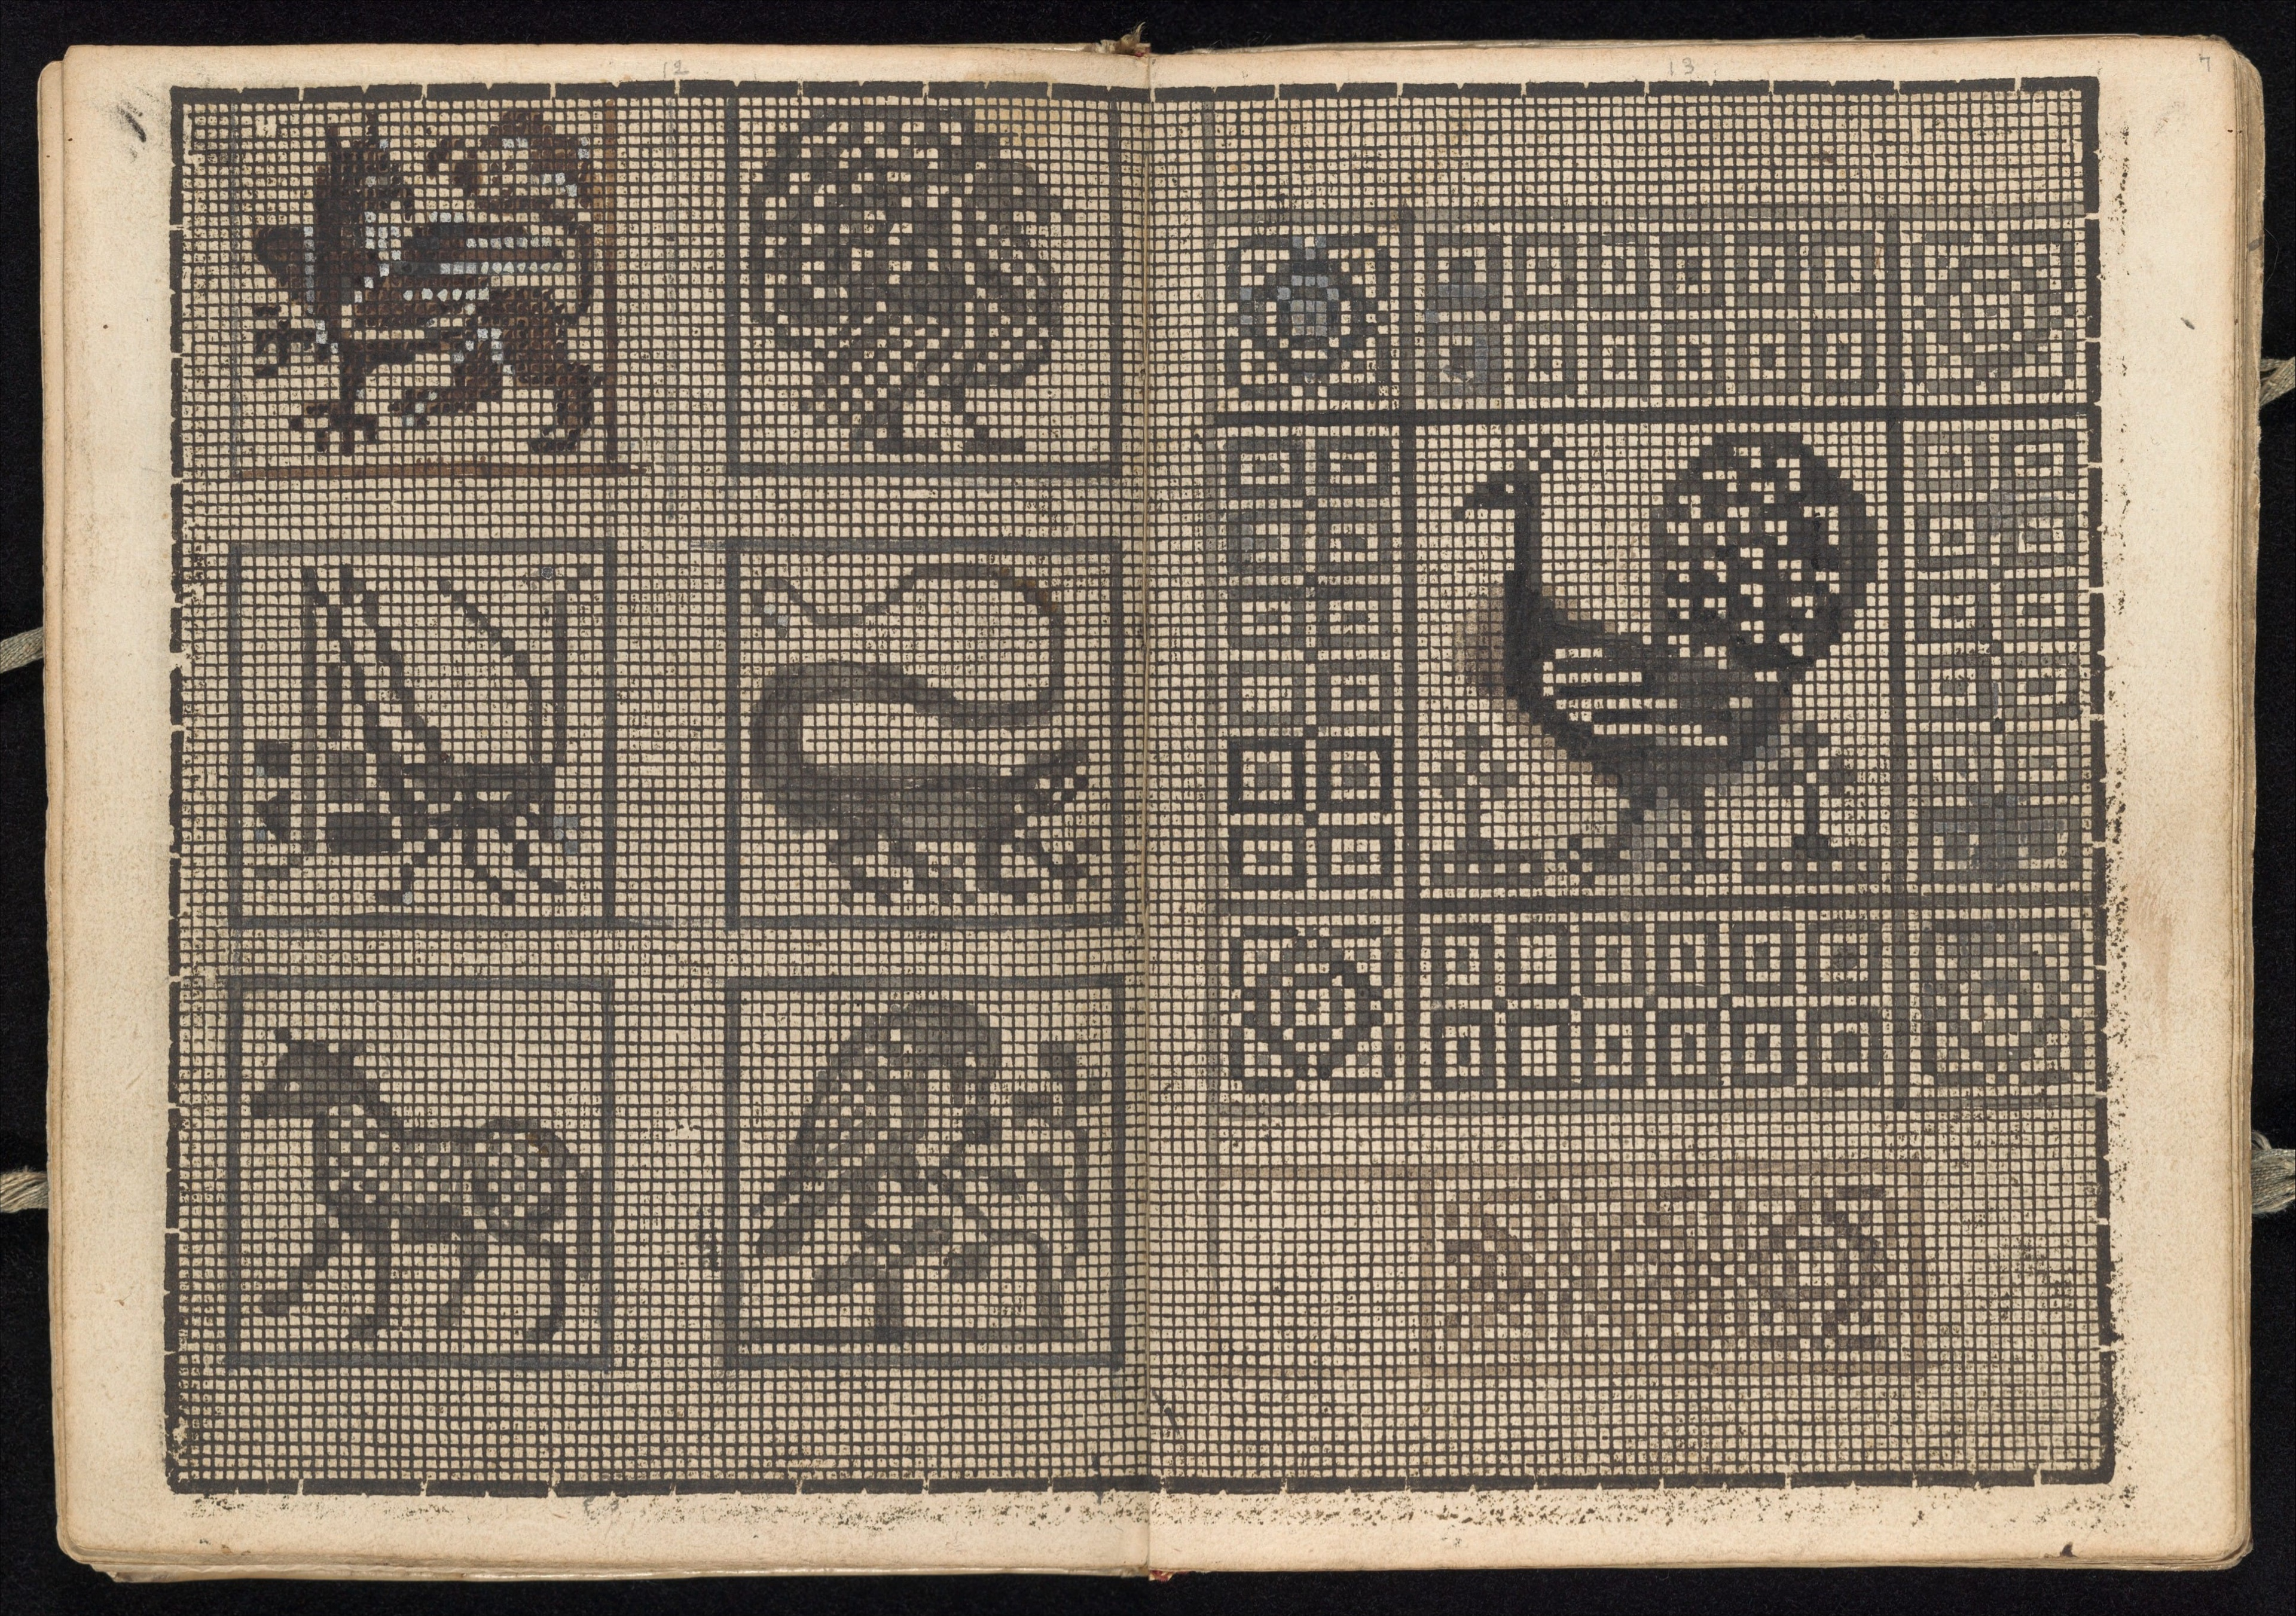 A printed grid with pen and ink designs. c. 1596. Source: The Met.